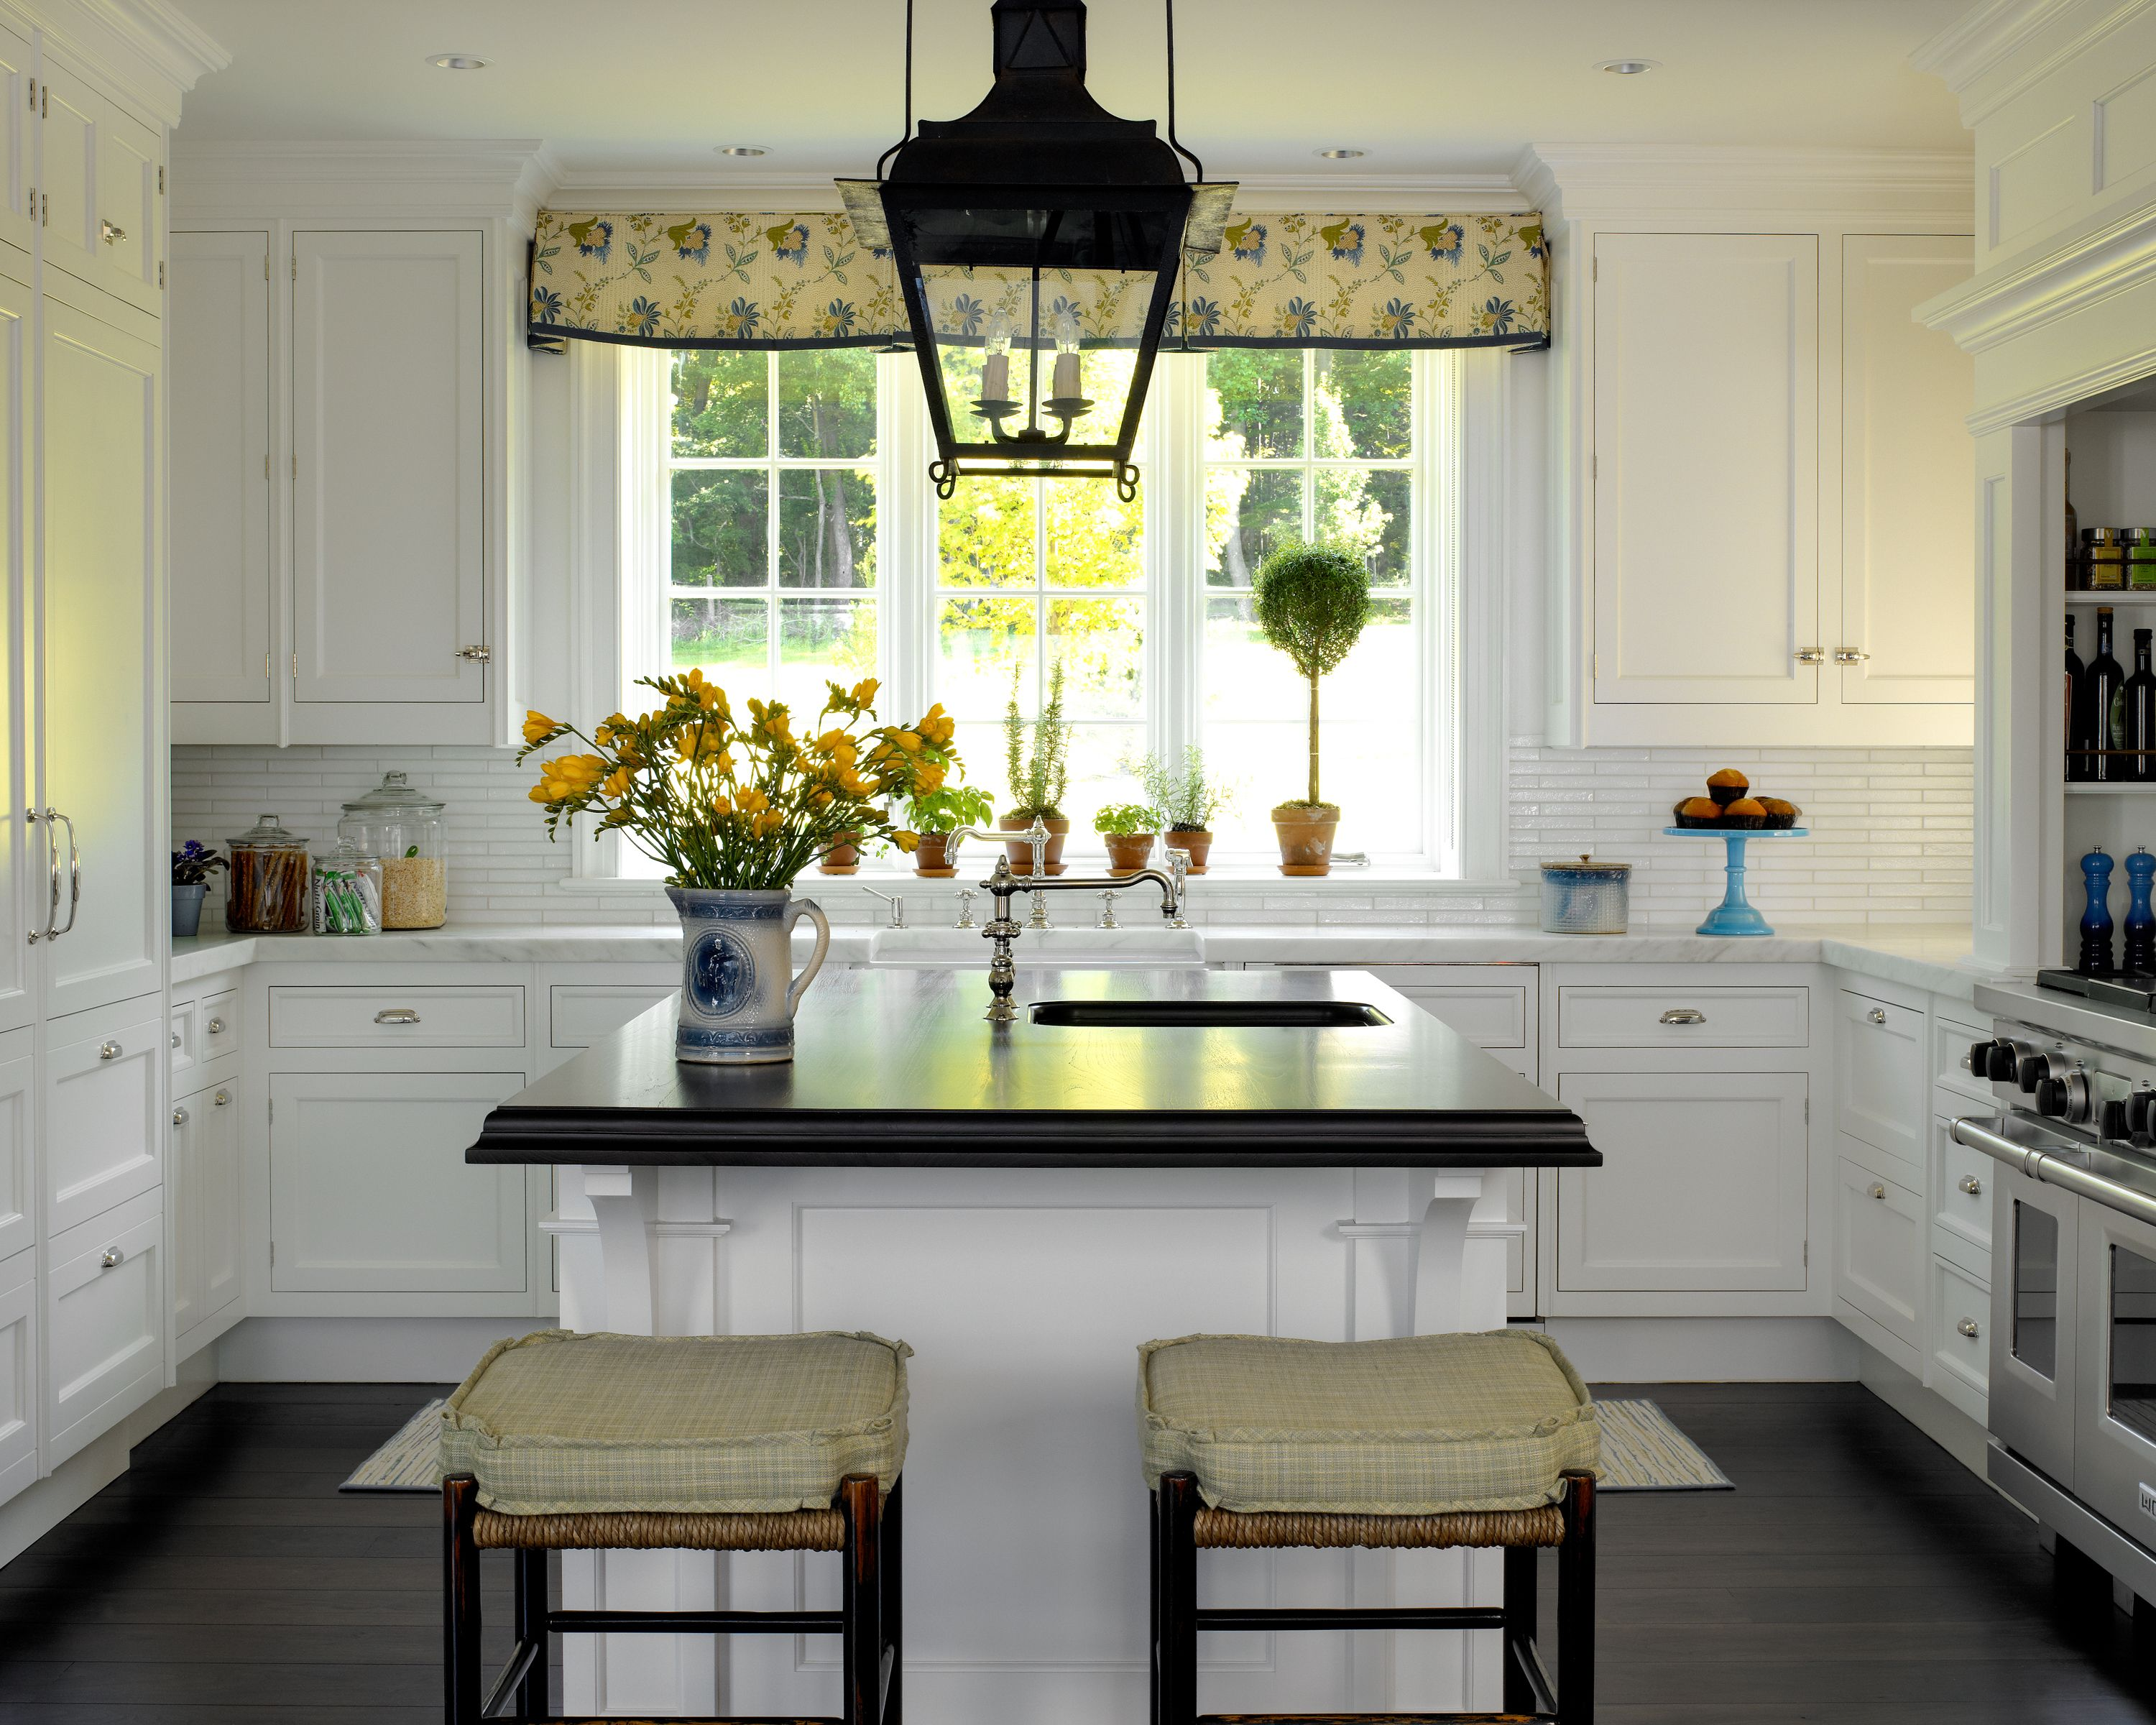 Colonial Style Kitchen With White Cabinetry Blue Yellow Accents Scott Sanders Colonial Home Decor Kitchen Decor Kitchen Remodel